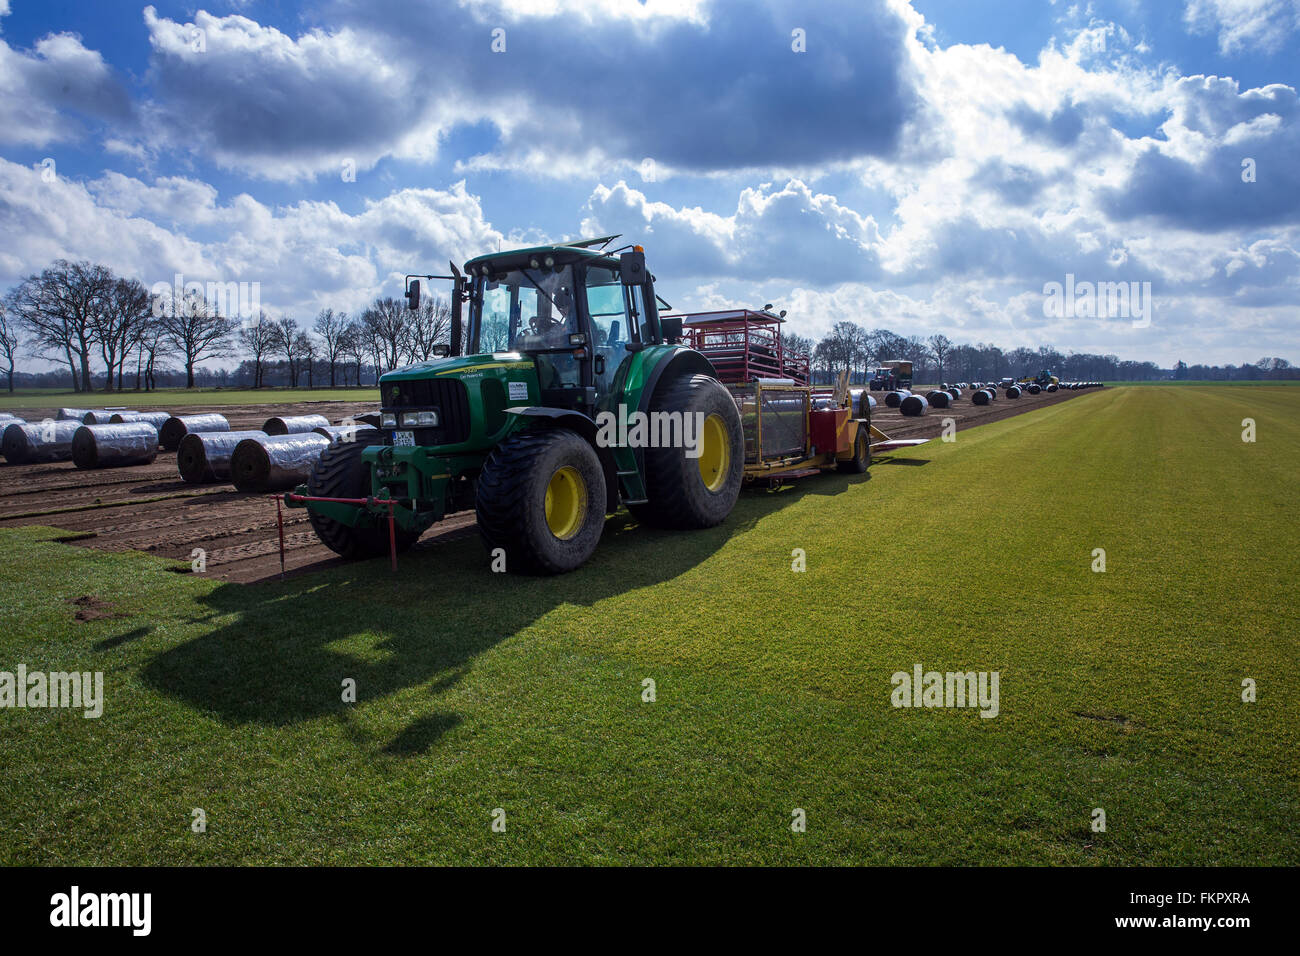 Alt Zachun, Germany. 8th Mar, 2016. A staff member operates a special machine collecting finished grown sod lawn - Stock Image